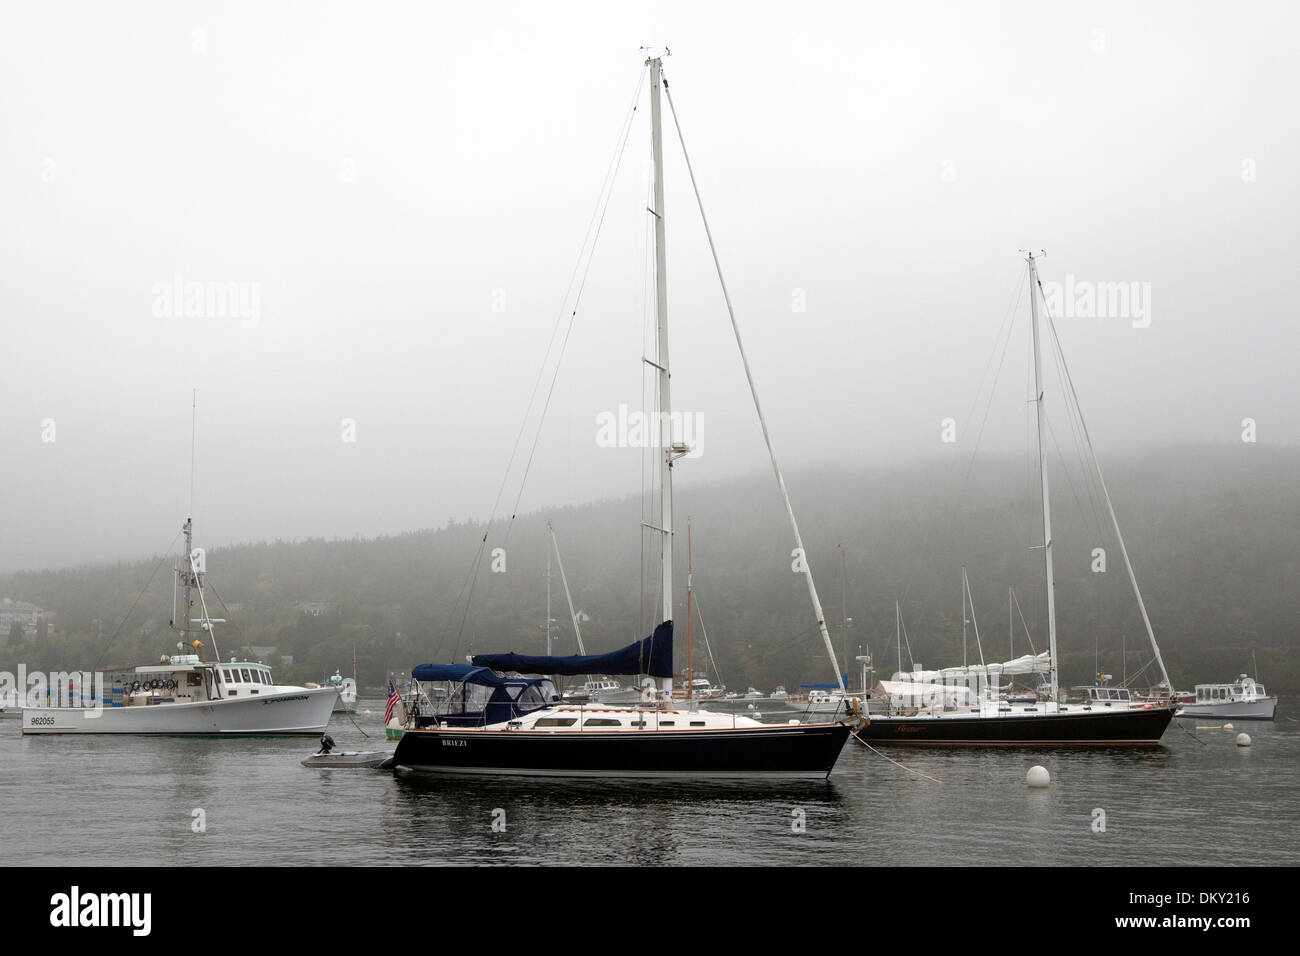 Sailboats moored in Northeast Harbor, Maine - Stock Image